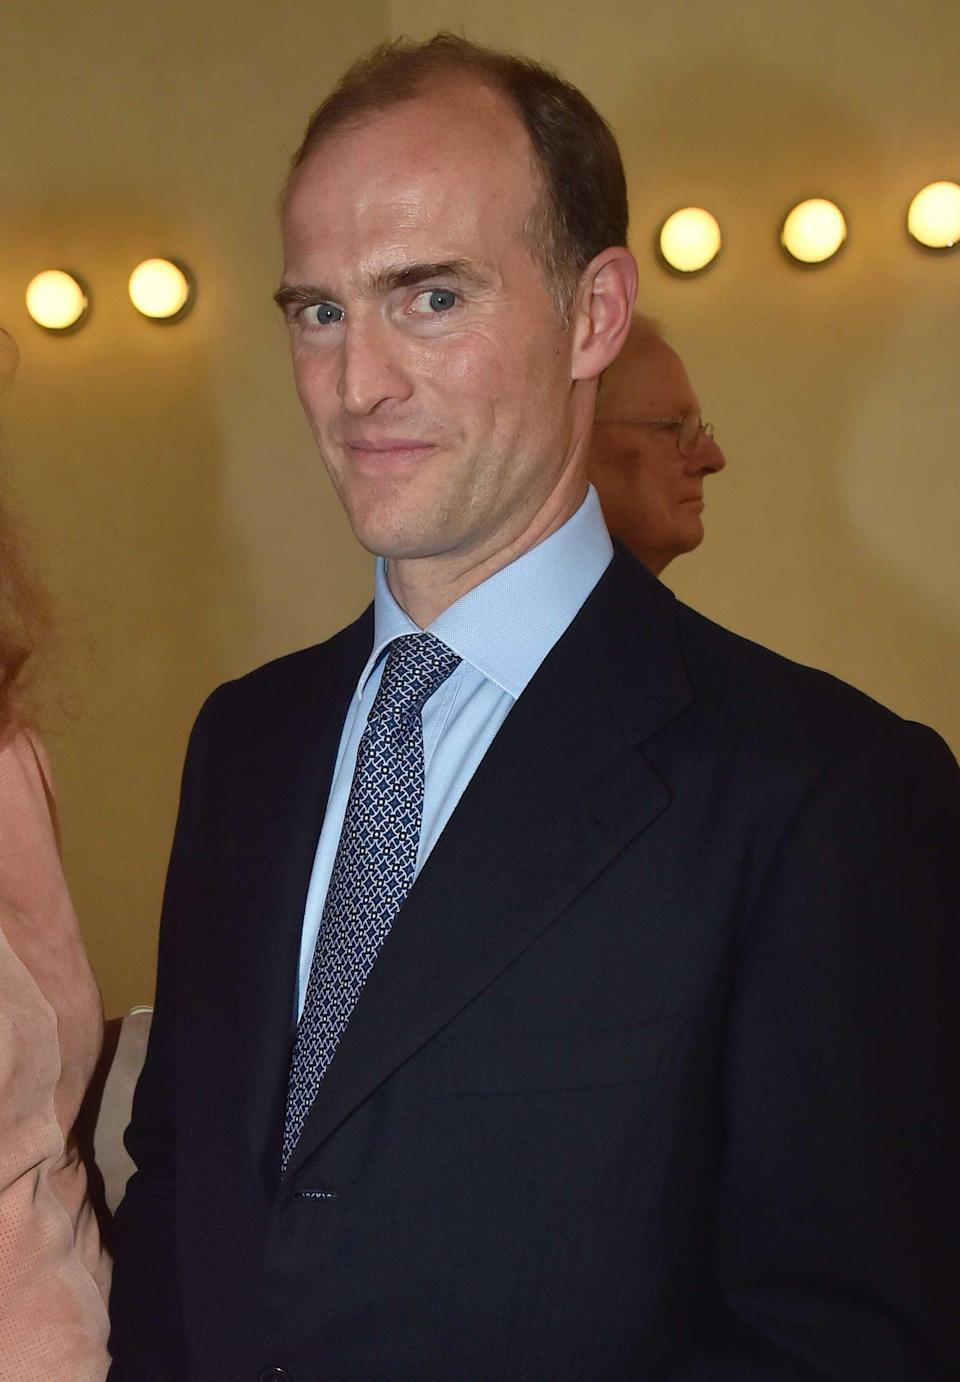 Prince Donatus, Landgrave of Hesse, who is one of the 30 guests who will be in attendance at the Duke of Edinburgh's funeral at Windsor Castle on SaturdayPA